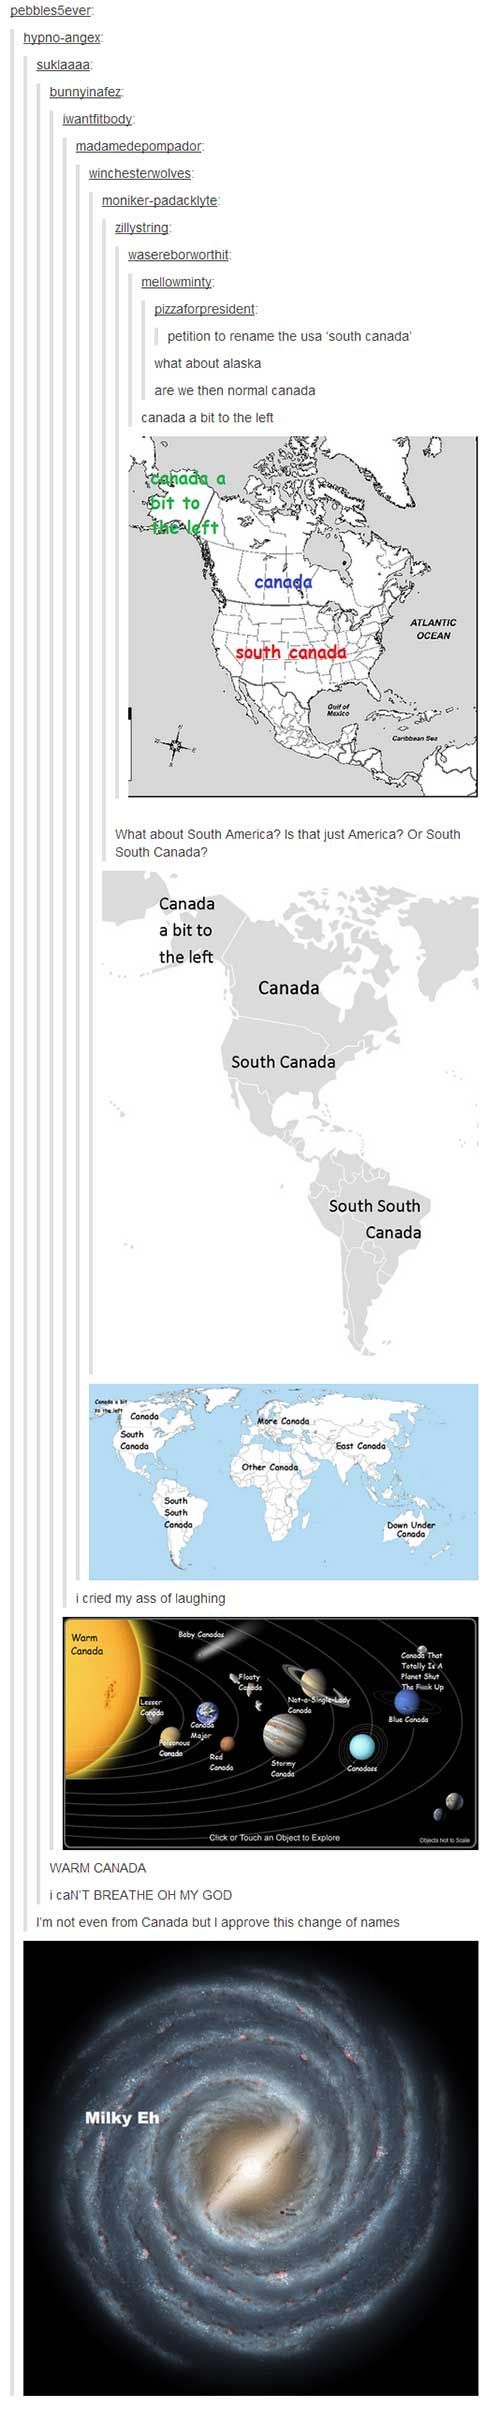 tumblr canada universe<-- I think I pinned this before, but, it got better Milk Eh. I love being Canadian.